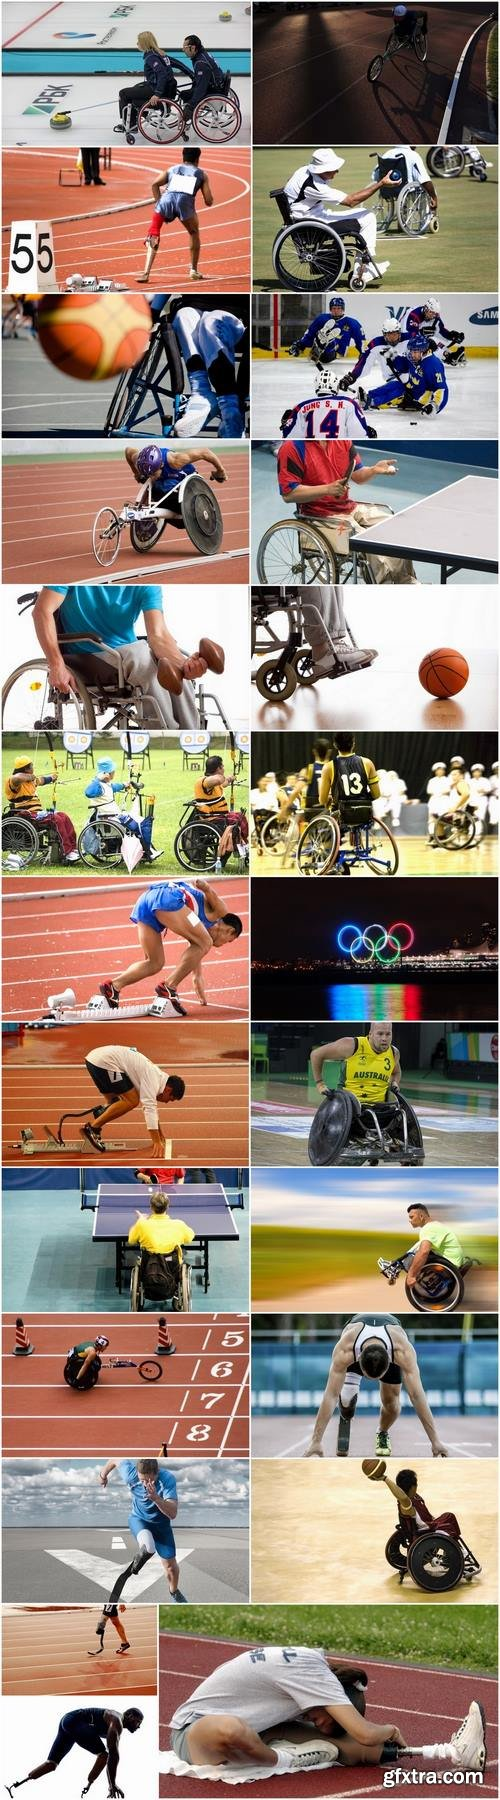 Paralympic sports disabled wheelchair race seat prosthesis implant 25 HQ Jpeg